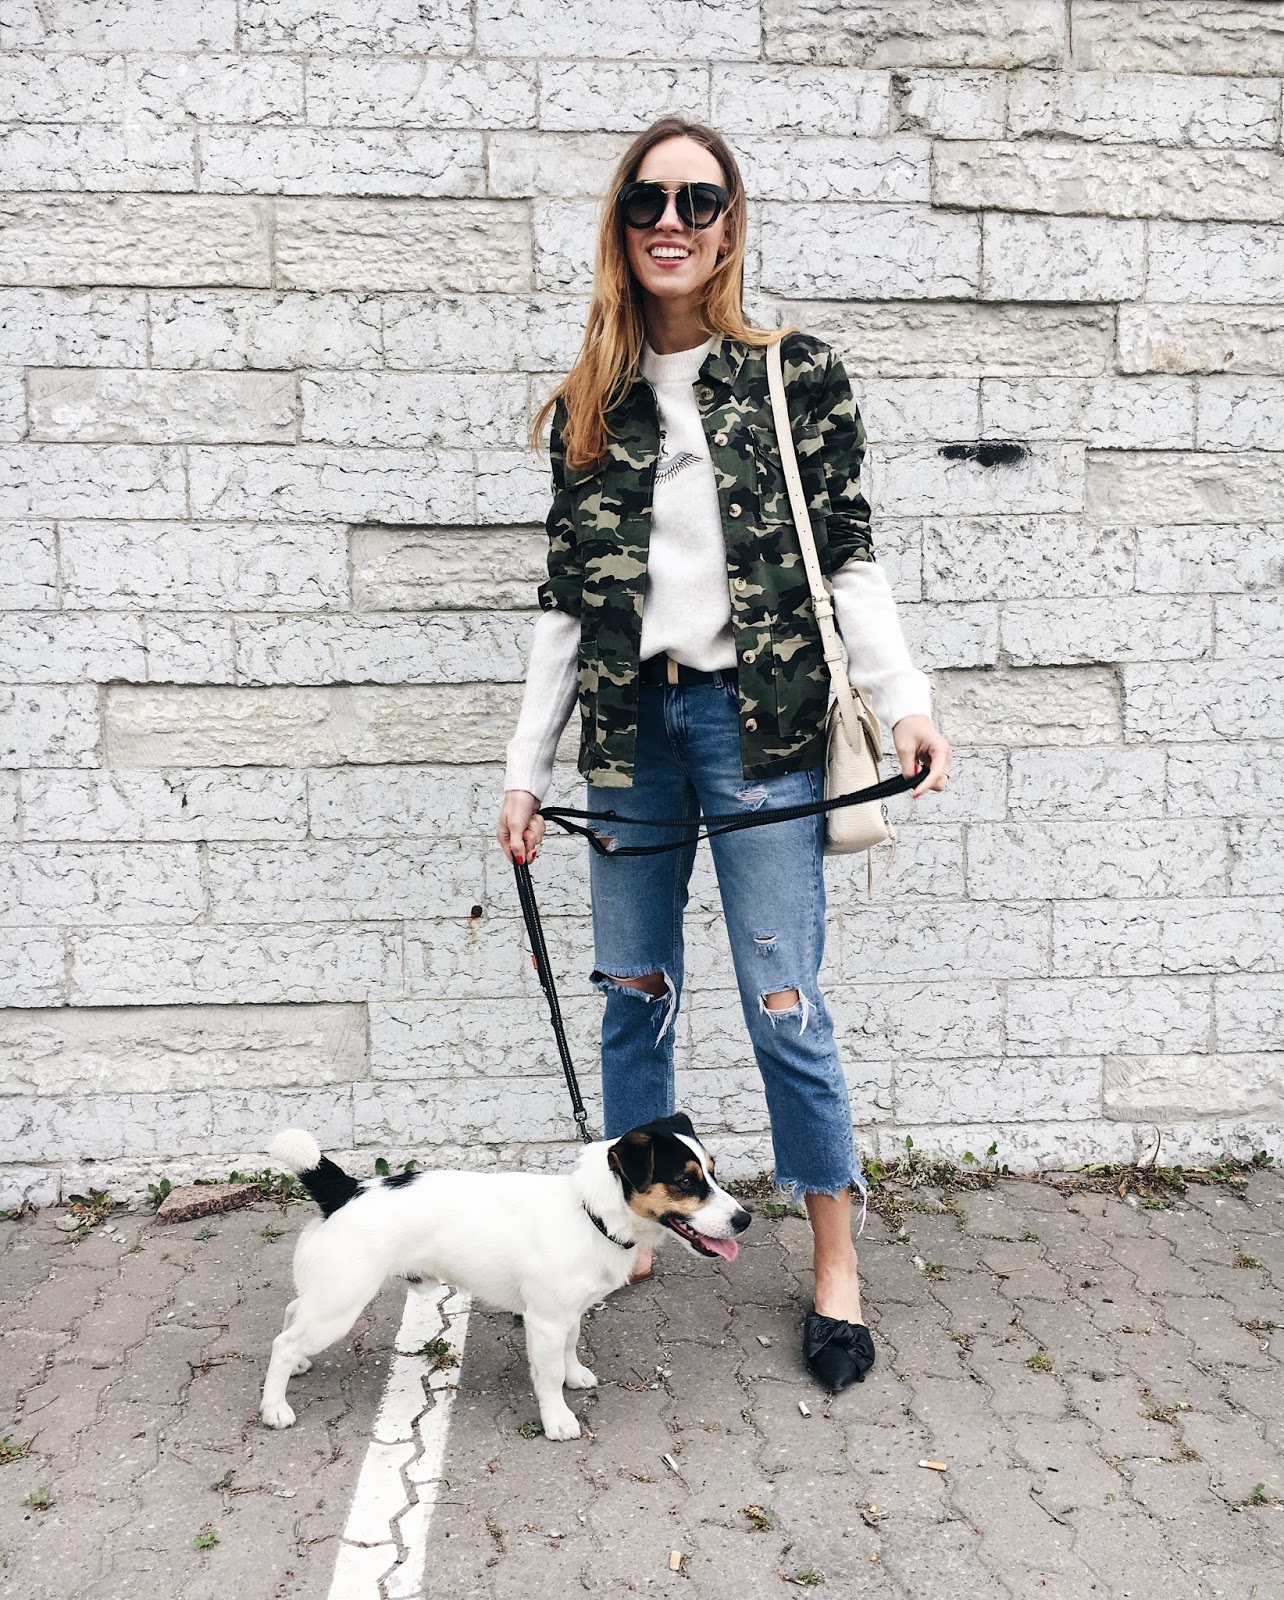 camo jacket outfit spring